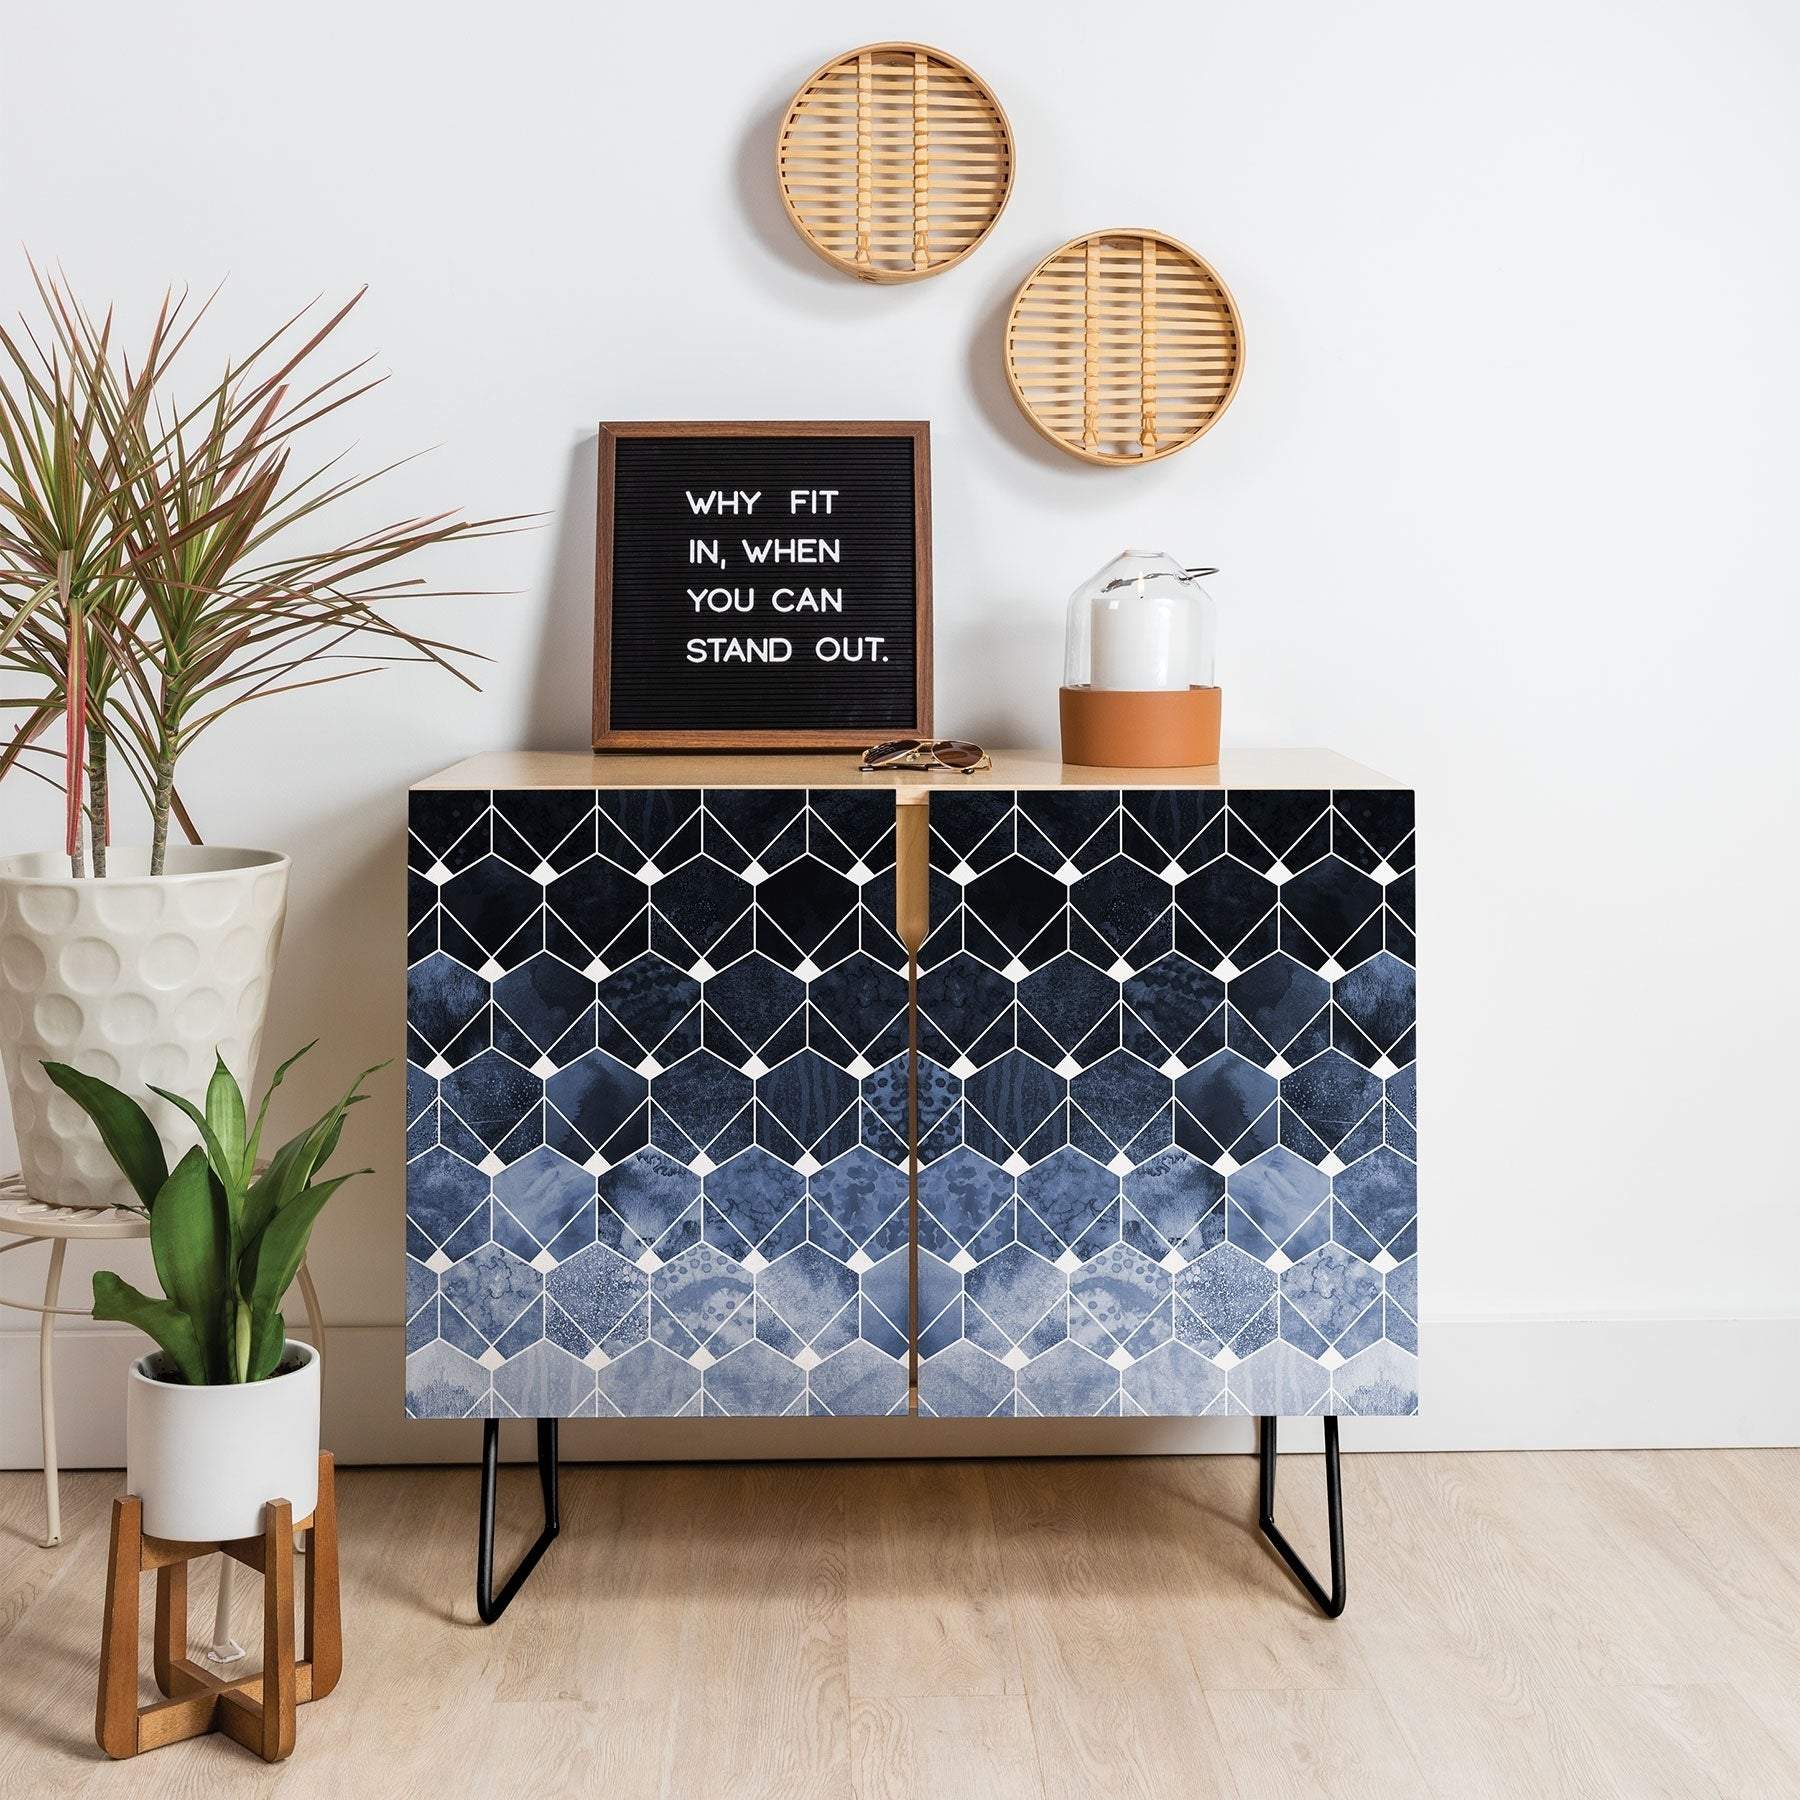 Deny Designs Blue Hexagons And Diamonds Credenza (Birch Or Walnut, 2 Leg Options) With Exagonal Geometry Credenzas (Gallery 7 of 30)